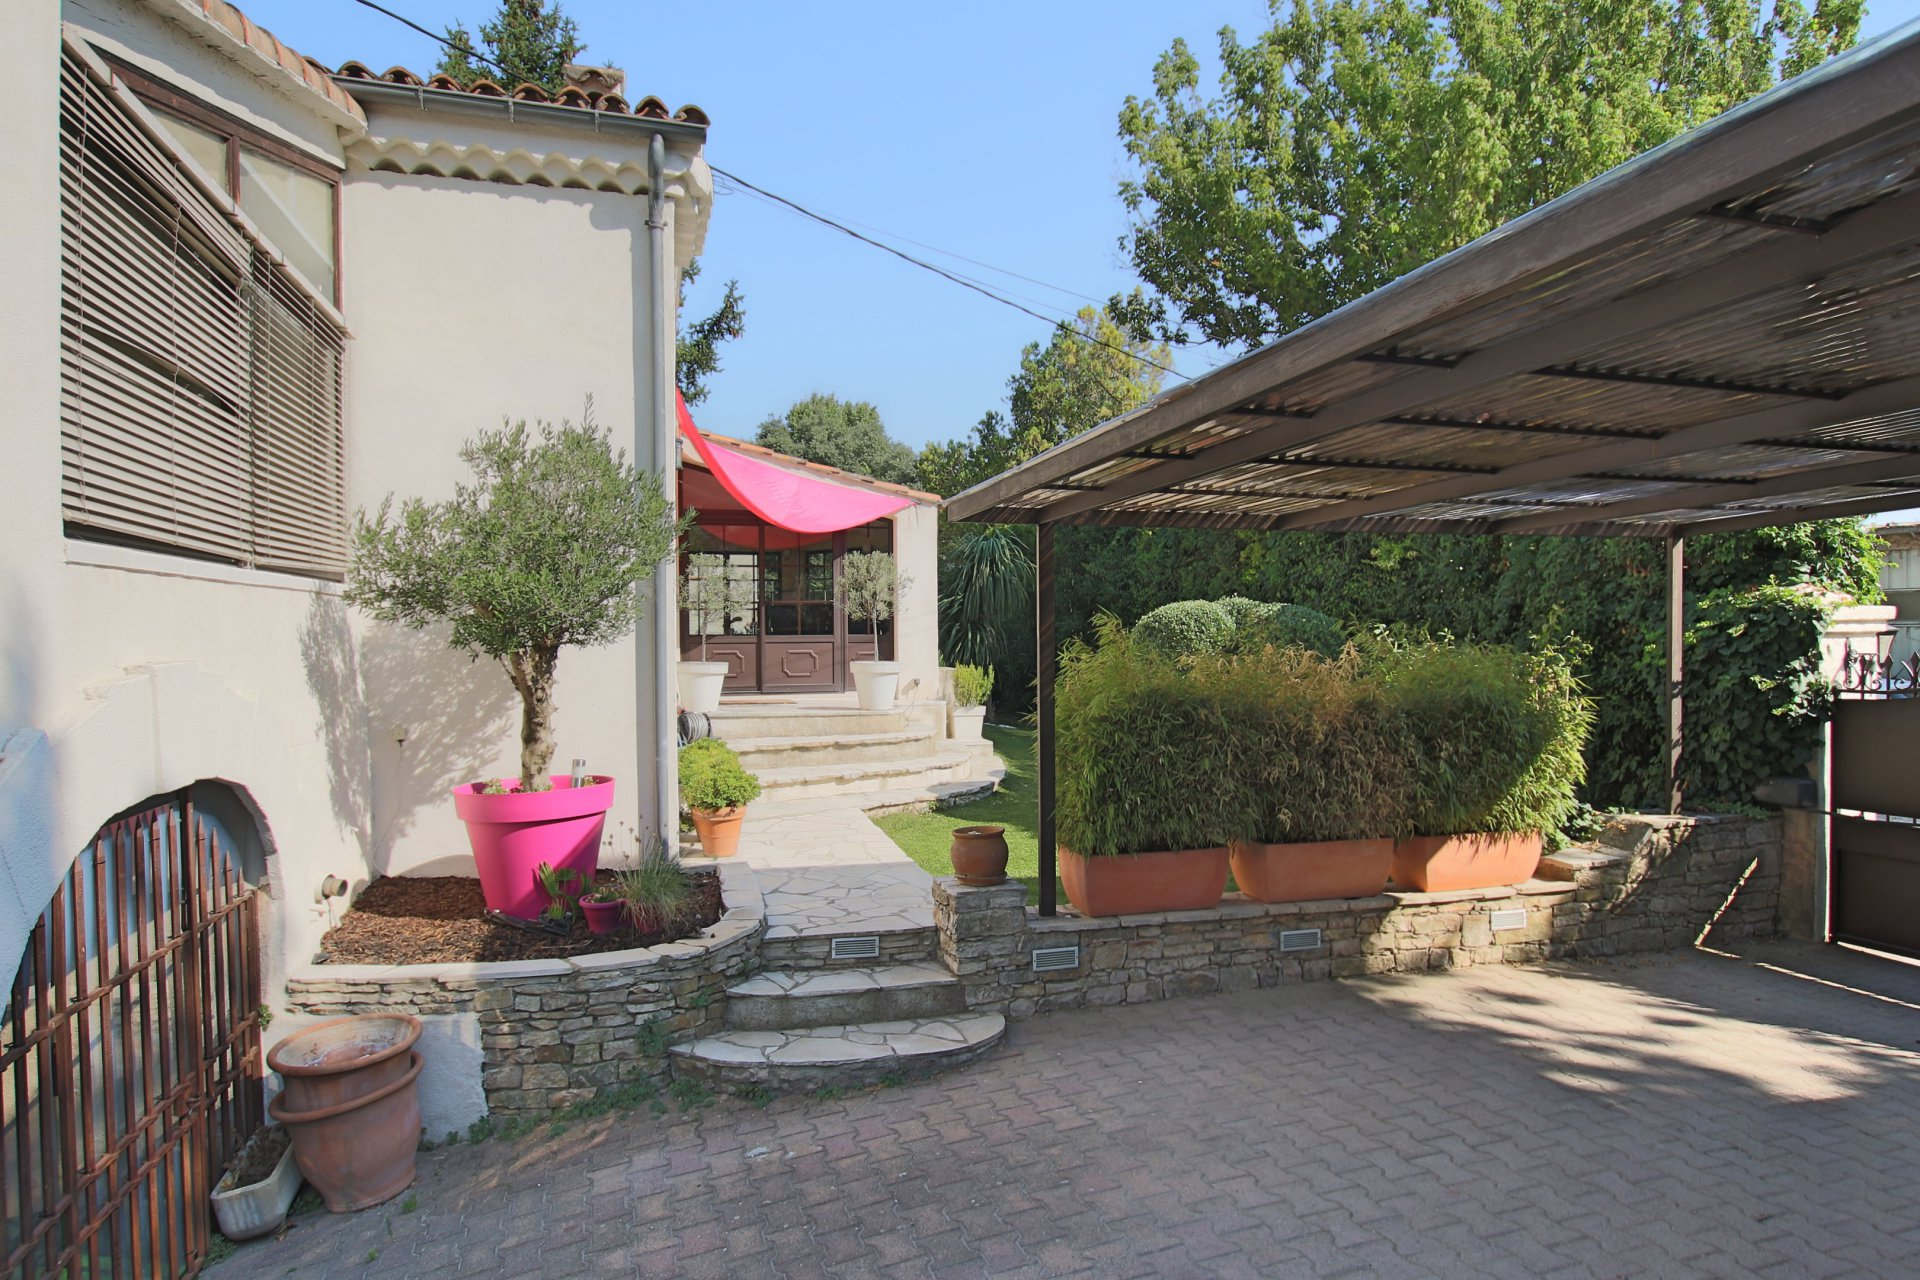 Architect Villa in town on one level / Aix-en-Provence